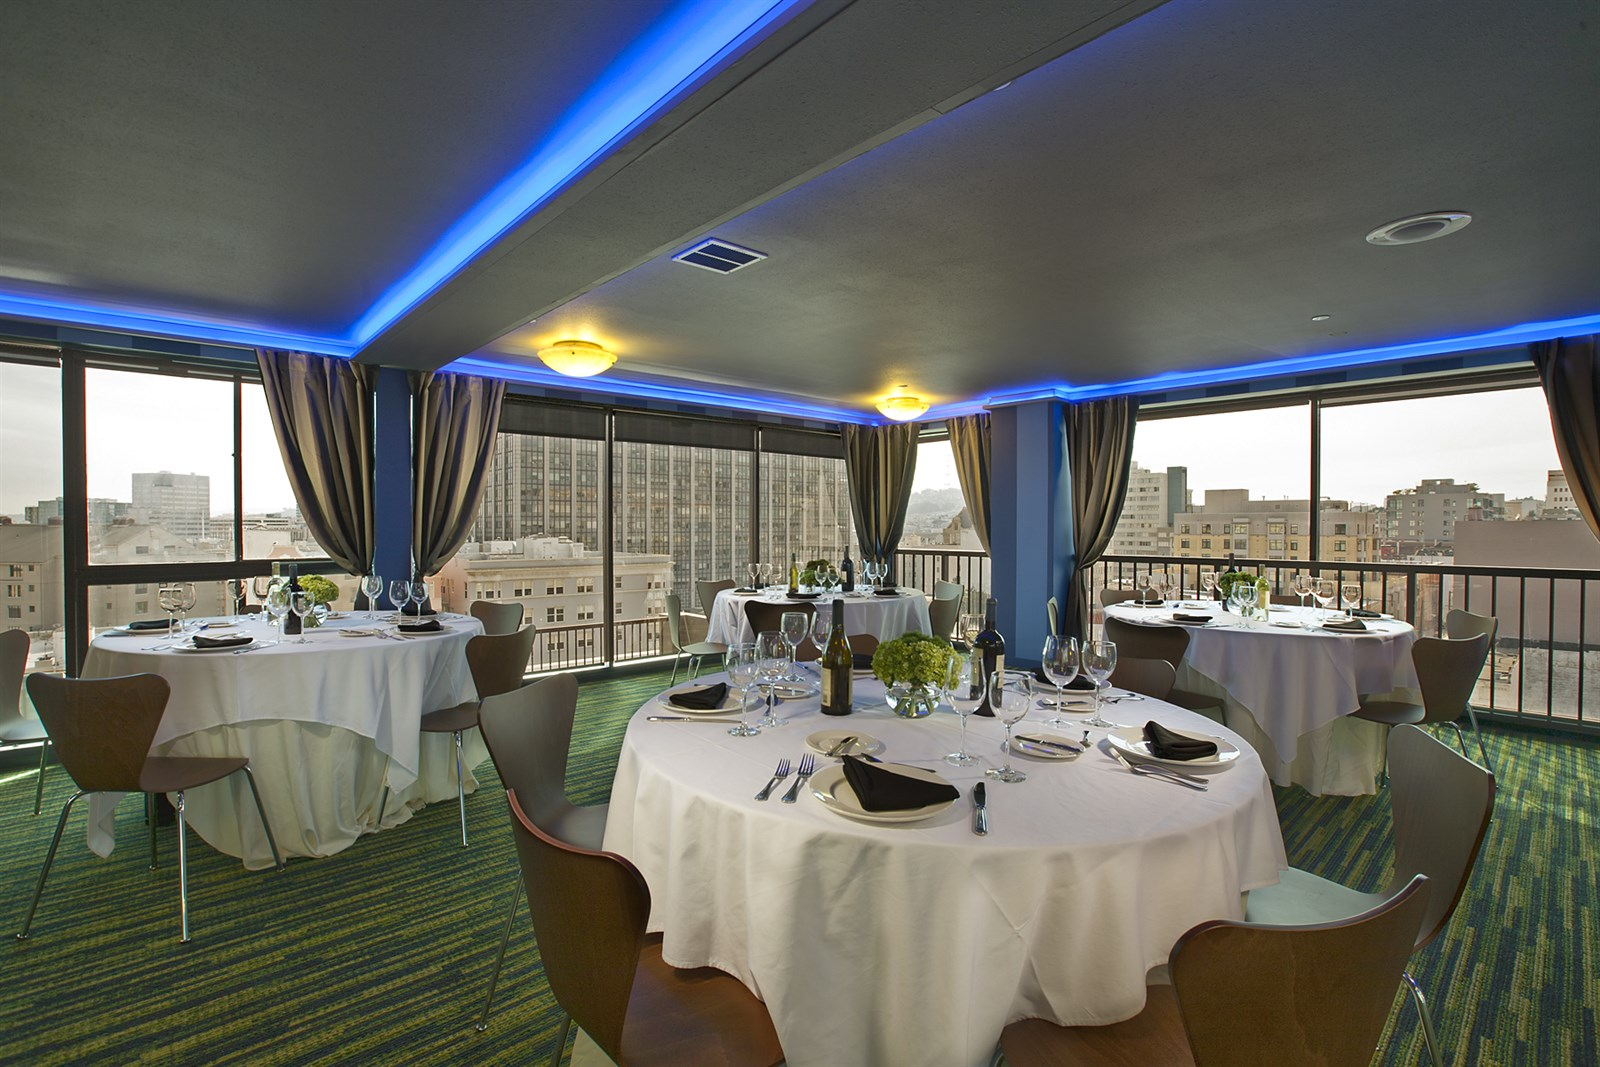 Photo #3 The Epic Banquet Room at Cova Hotel